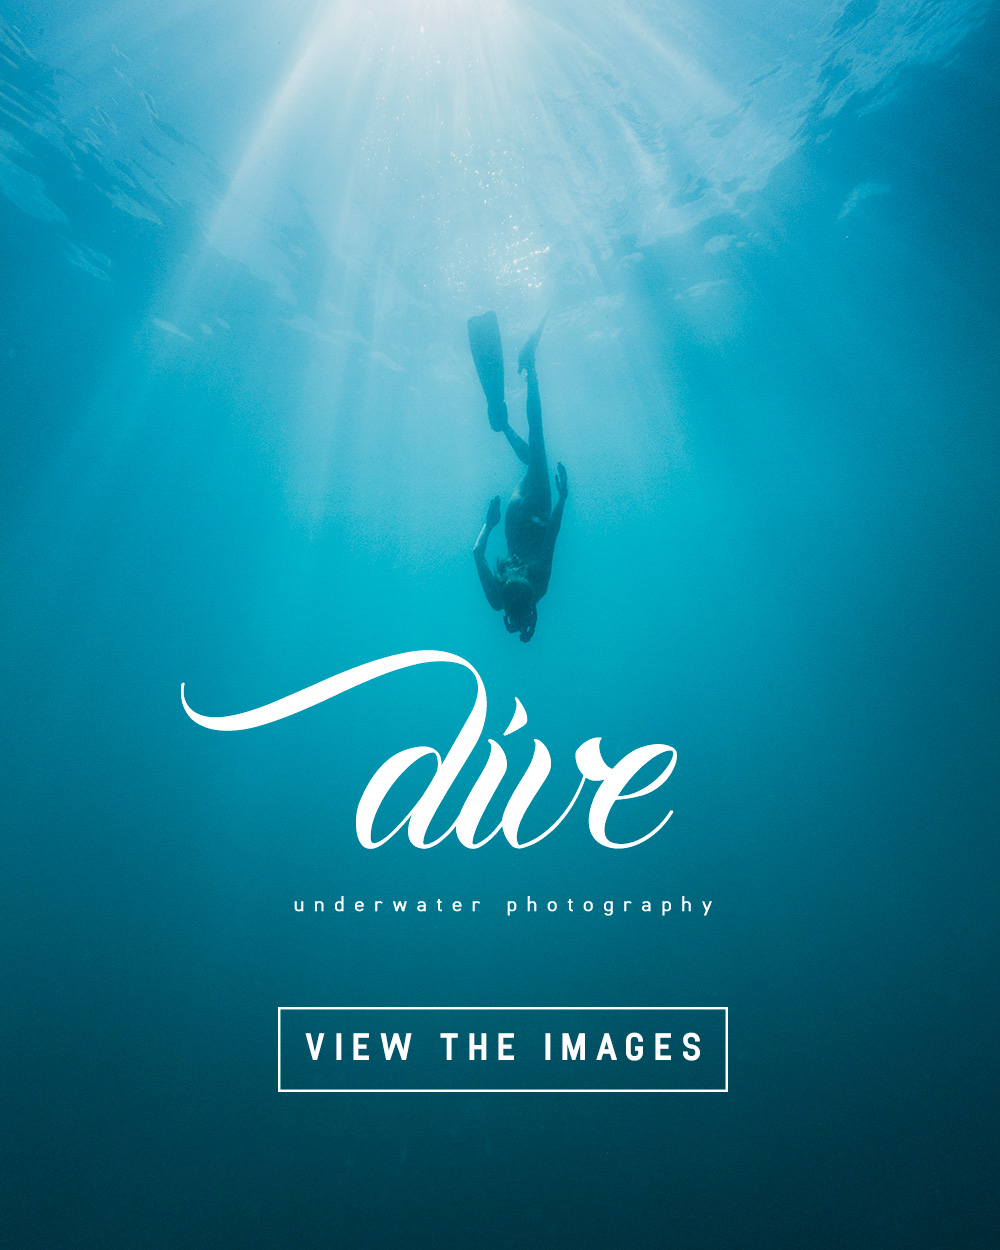 Dive: beautiful underwater photography